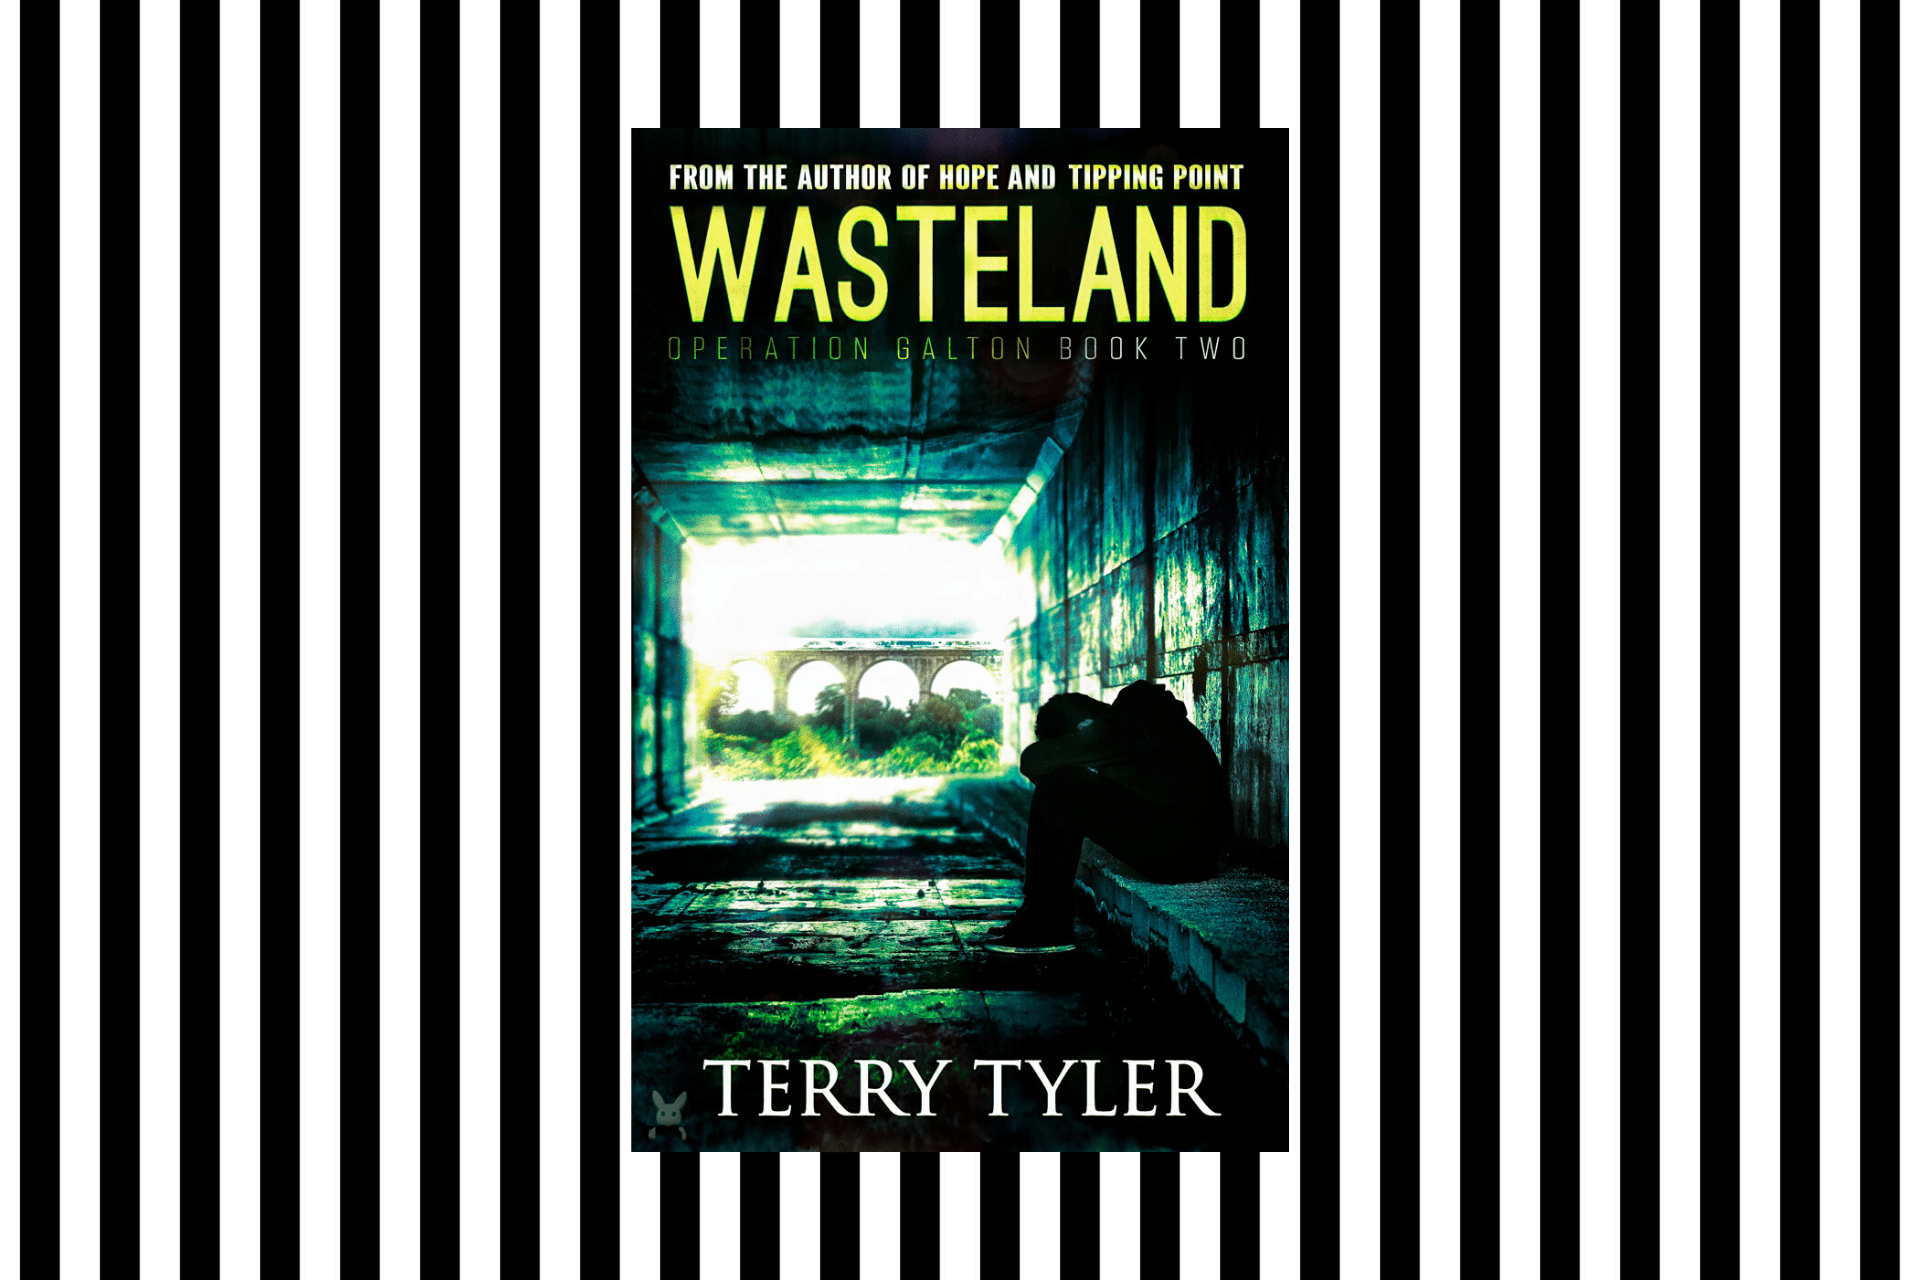 The cover of Wasteland by Terry Tyler